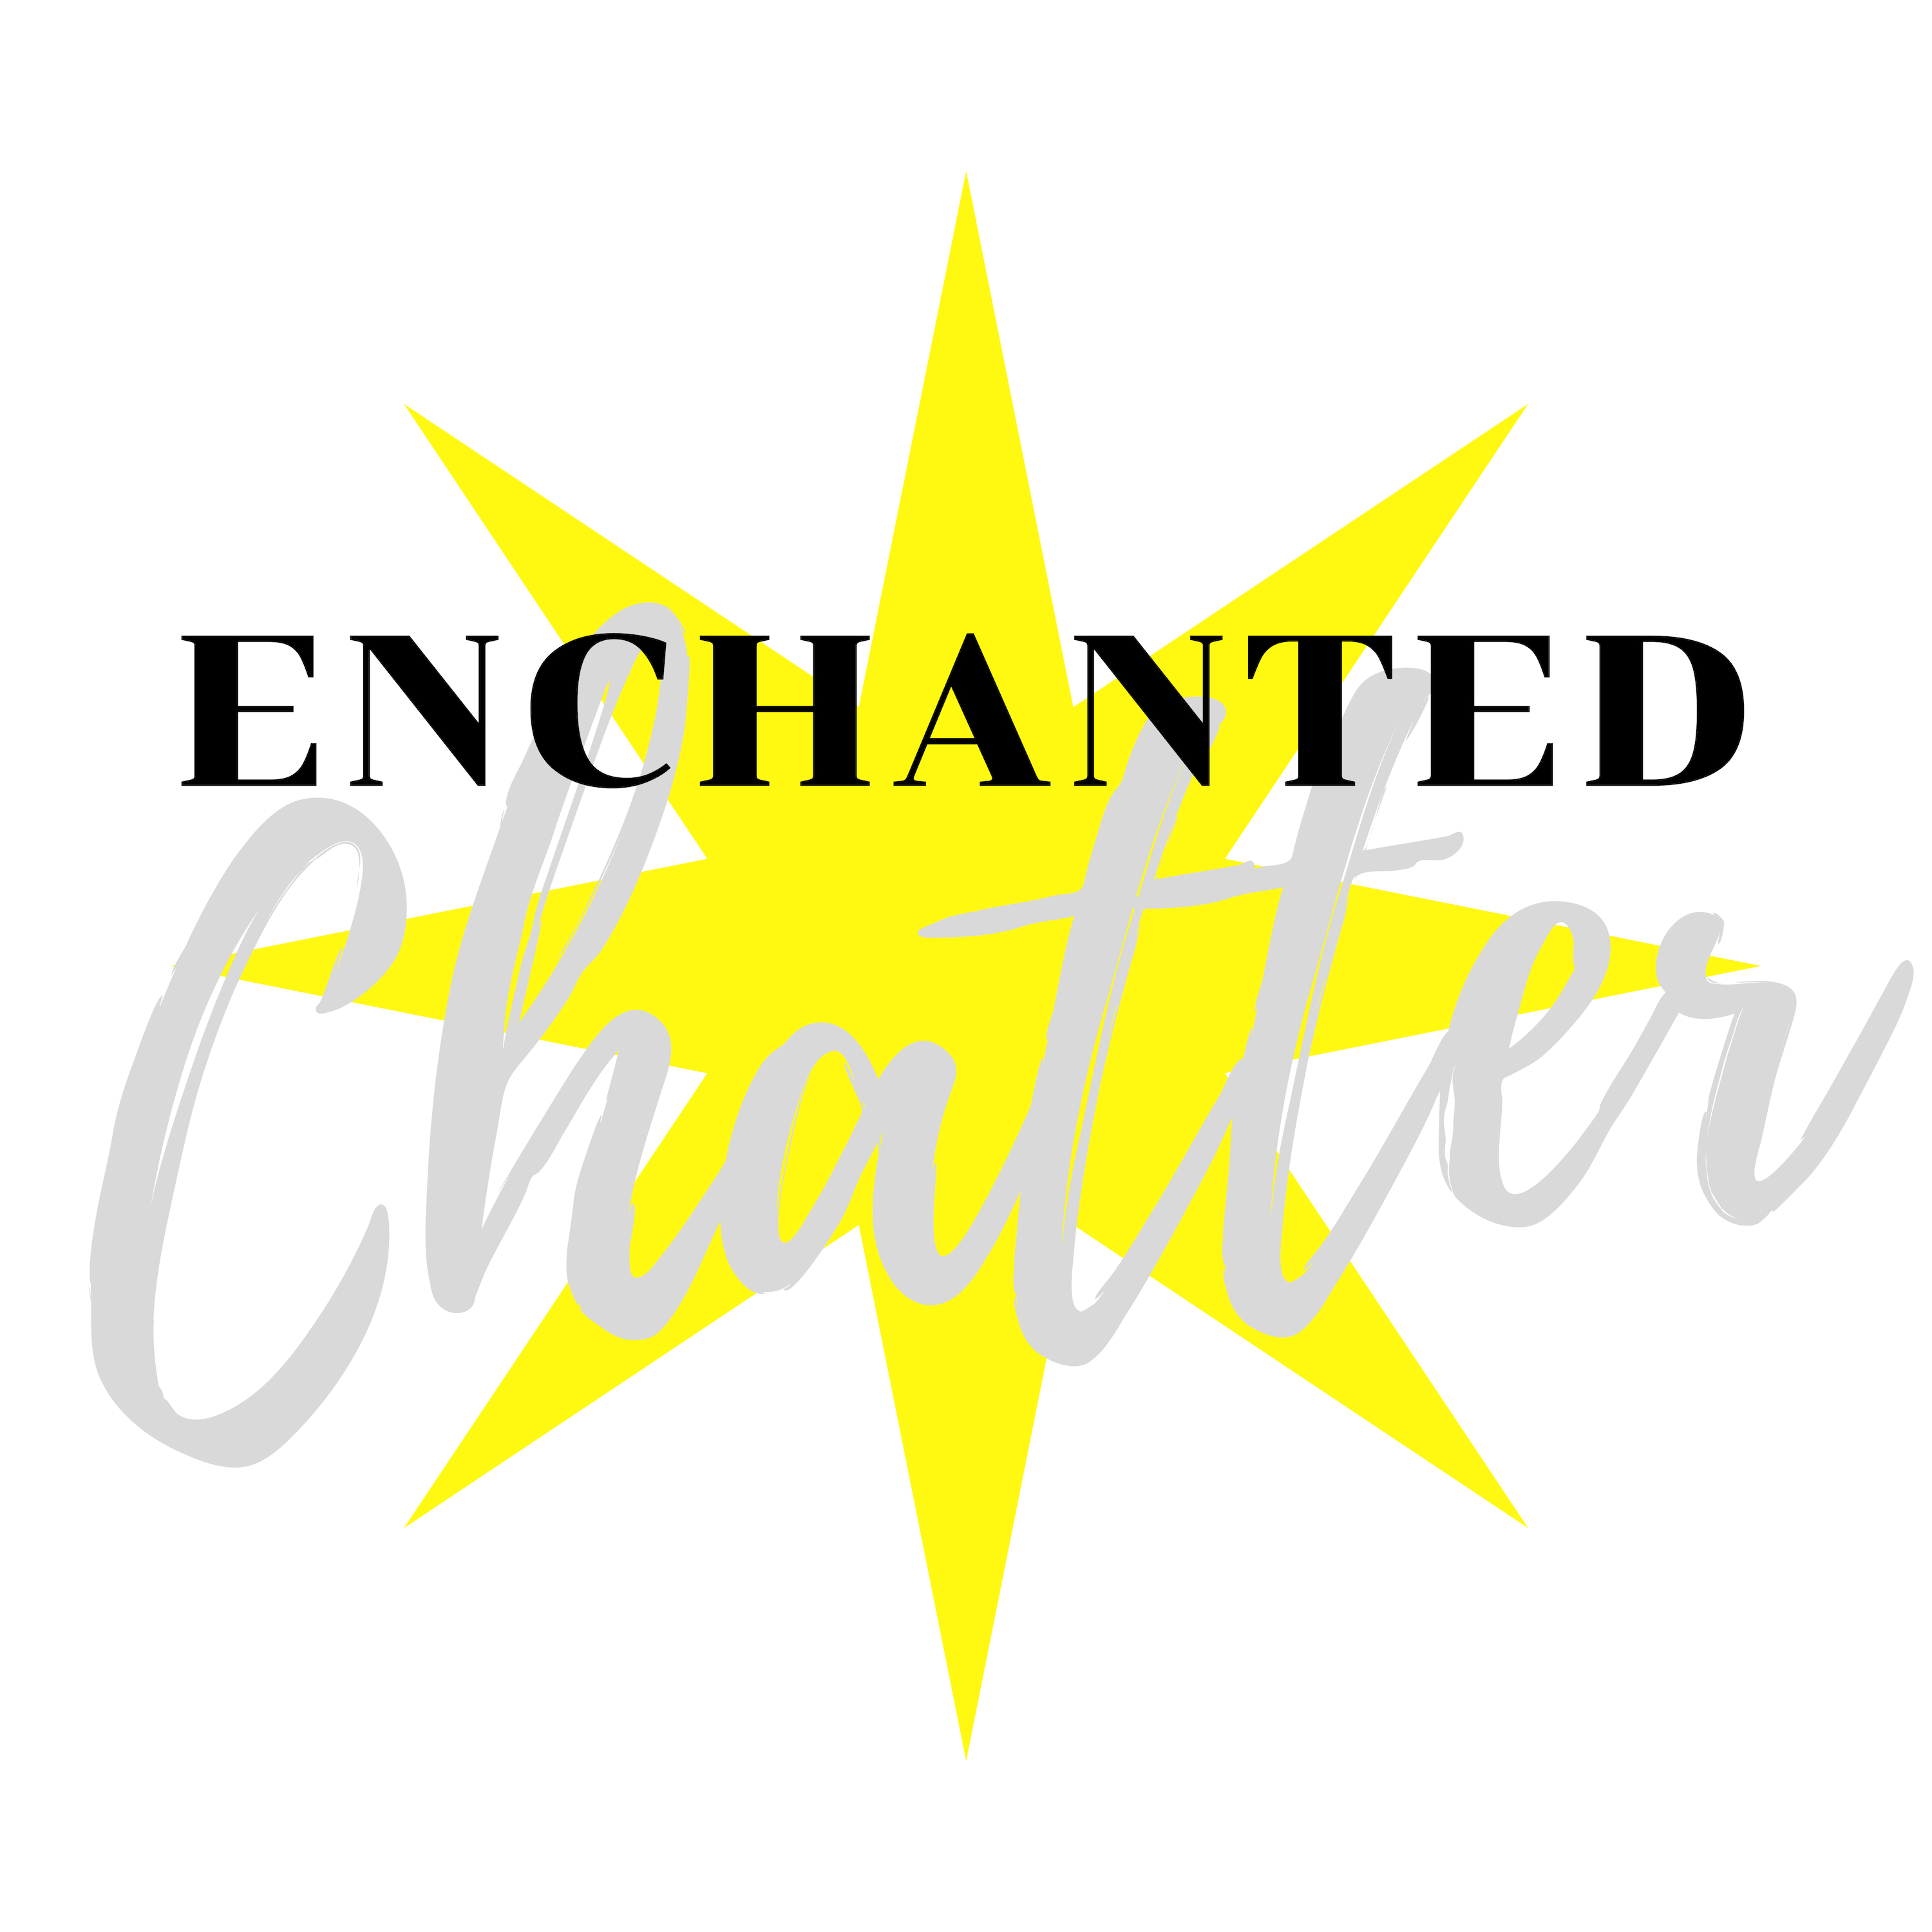 Enchanted Chatter